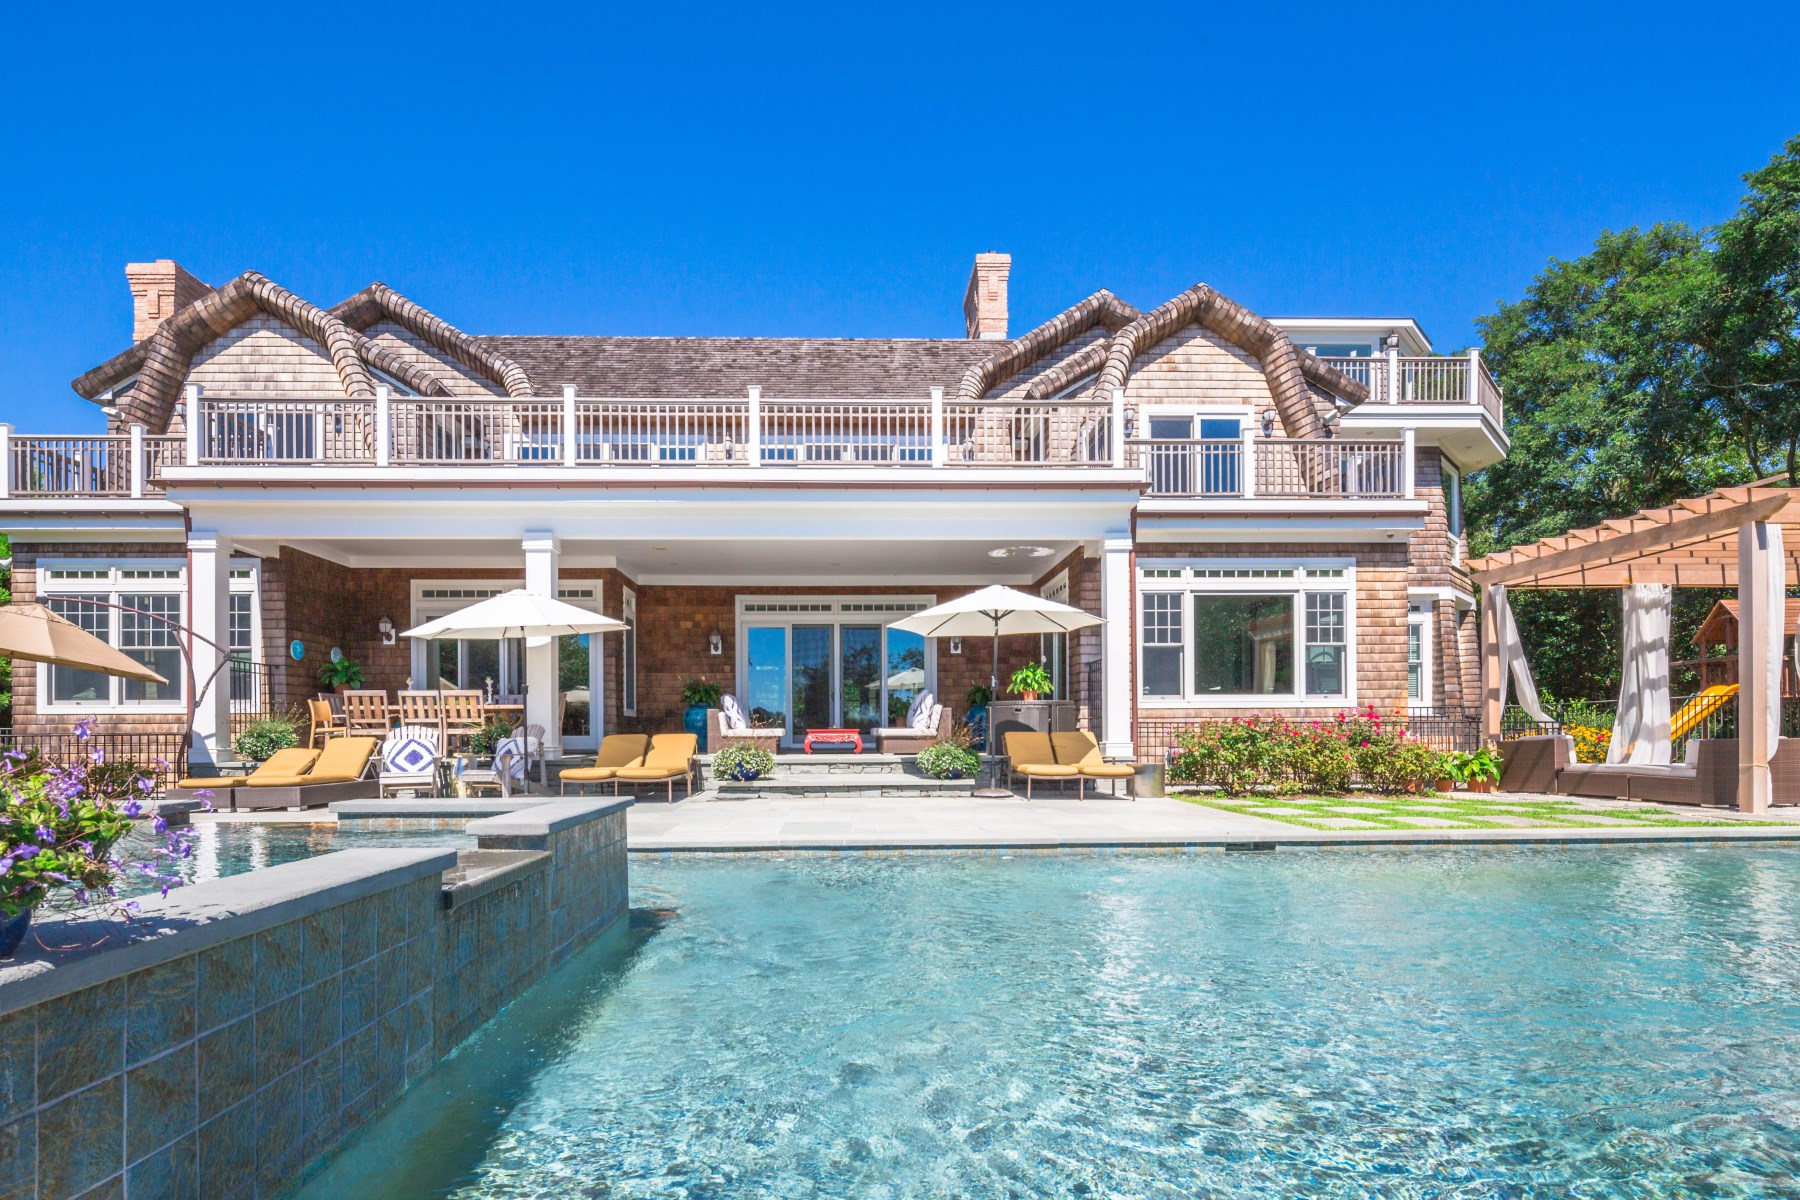 Moradia para Venda às Extraordinary Waterfront Estate 21 Kellis Way Bridgehampton, Nova York, 11932 Estados Unidos